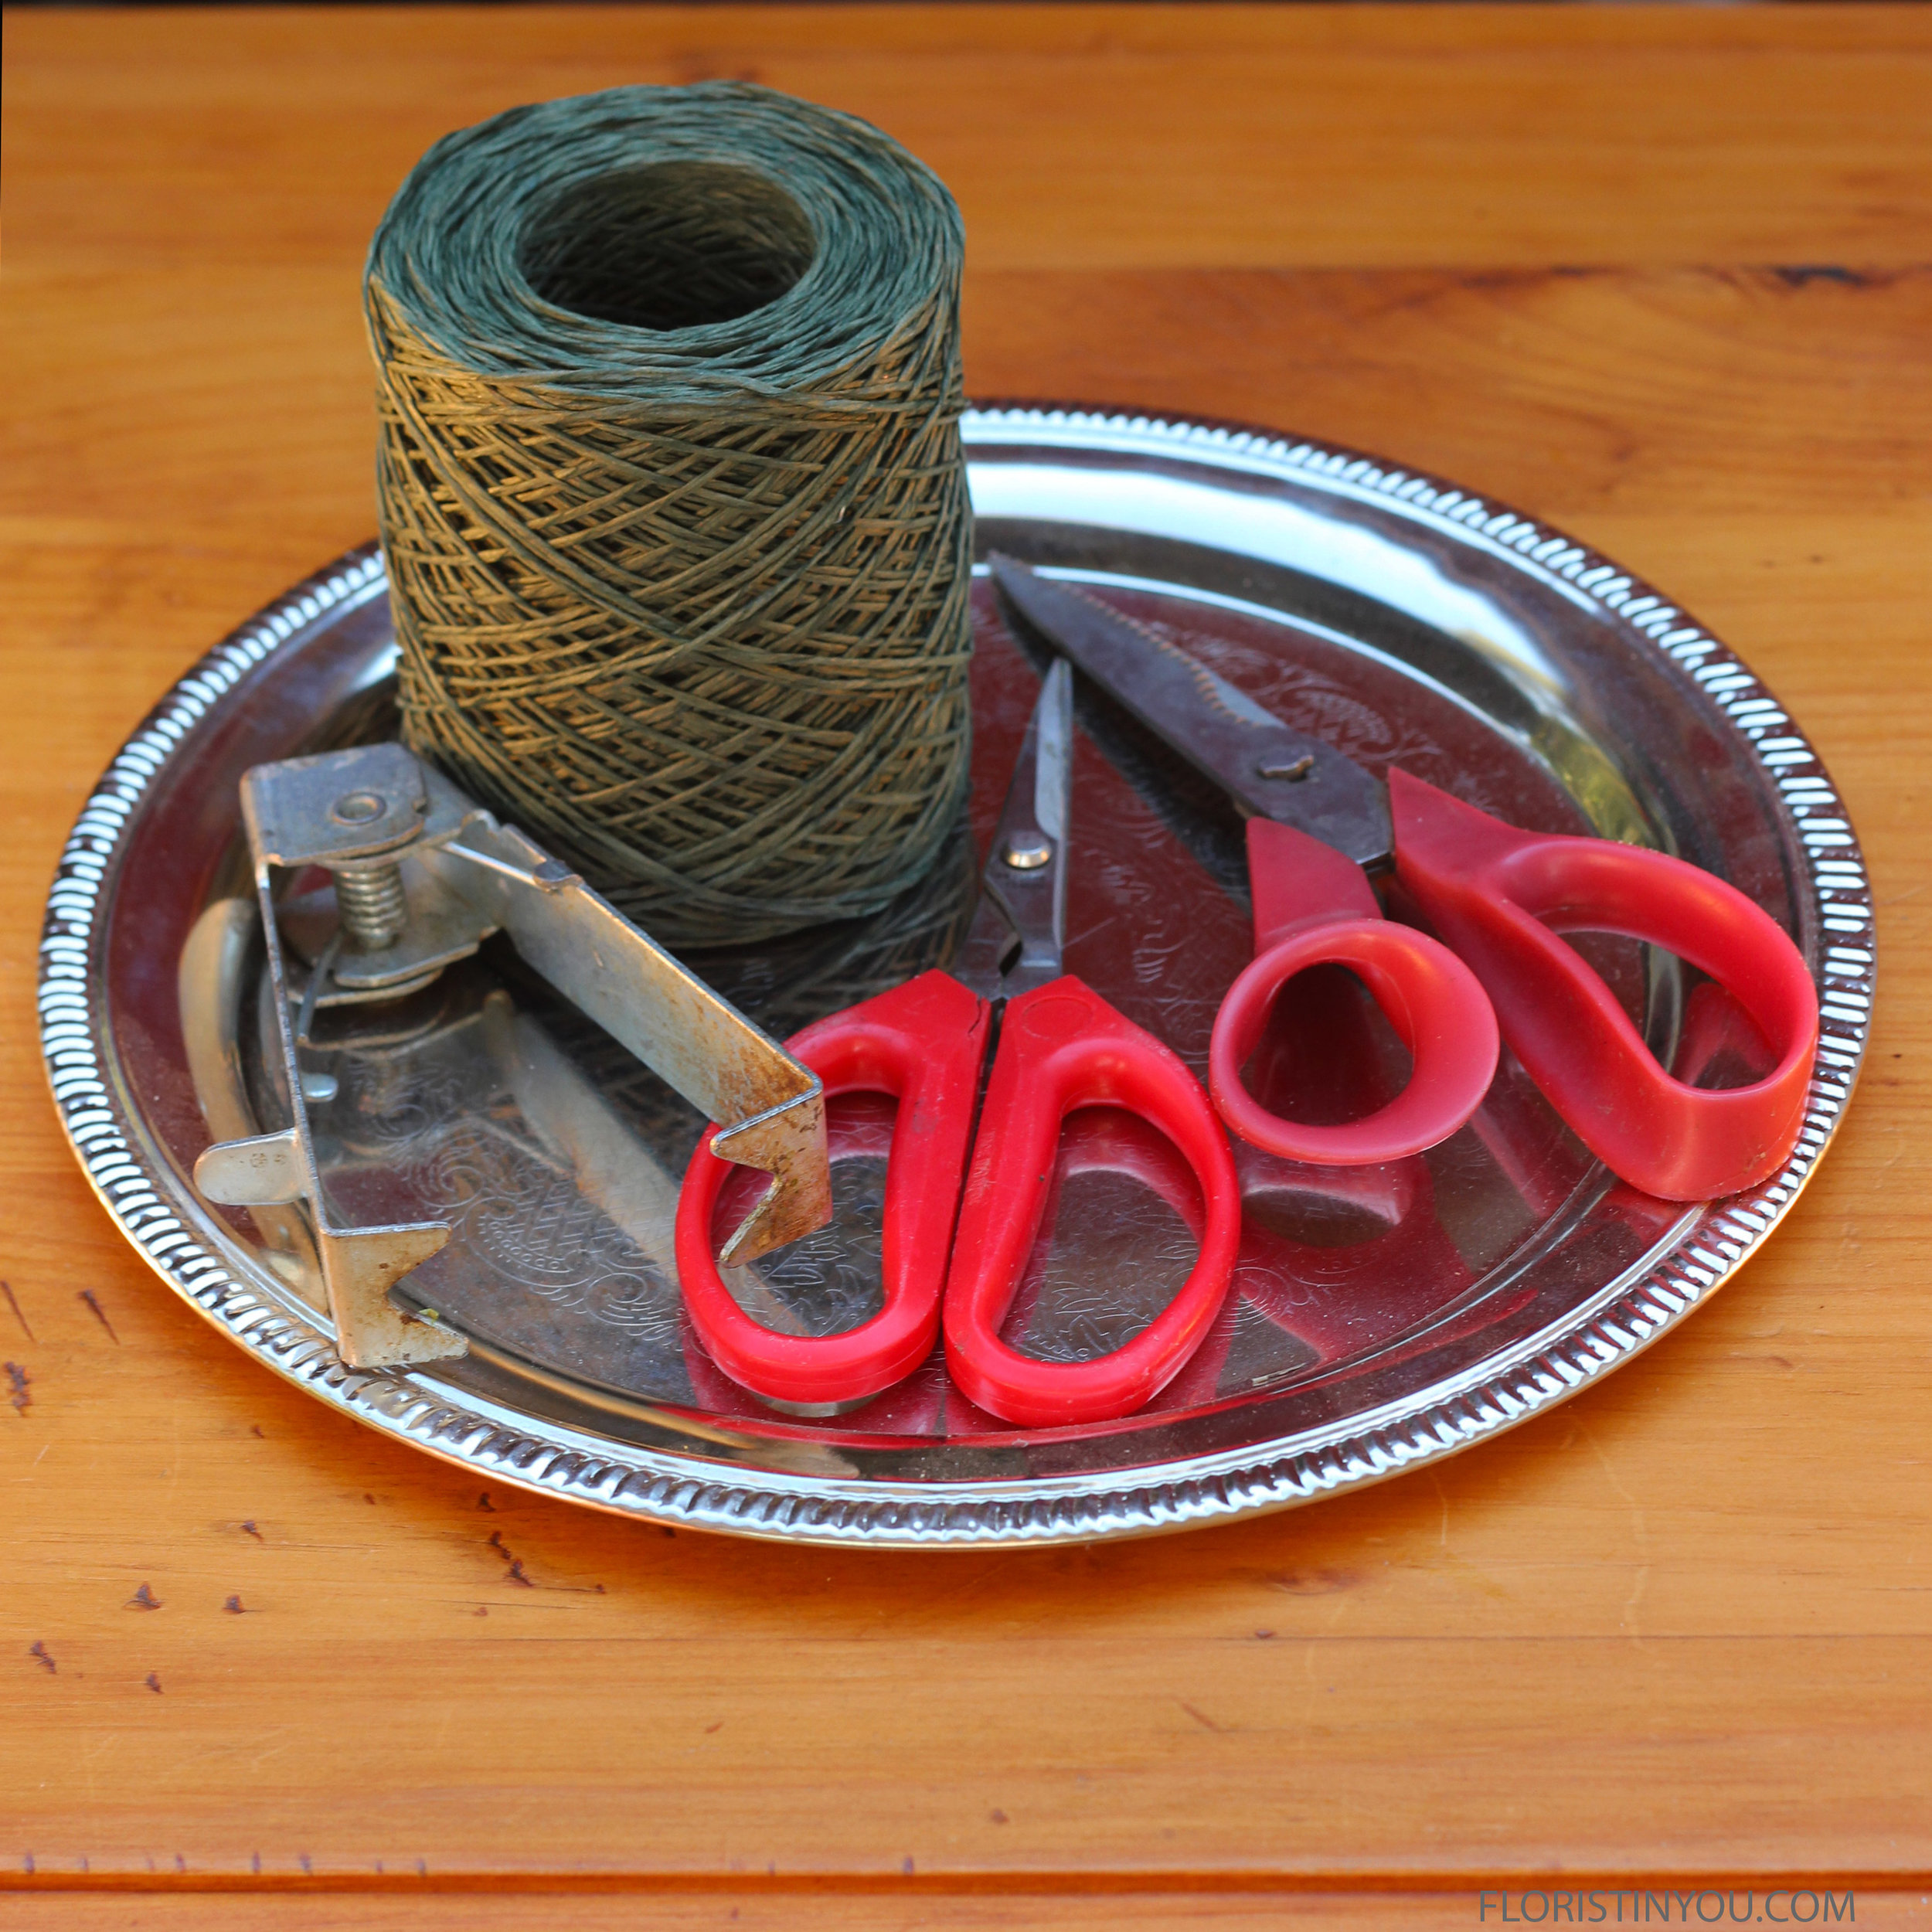 Here are your tools and bind wire.